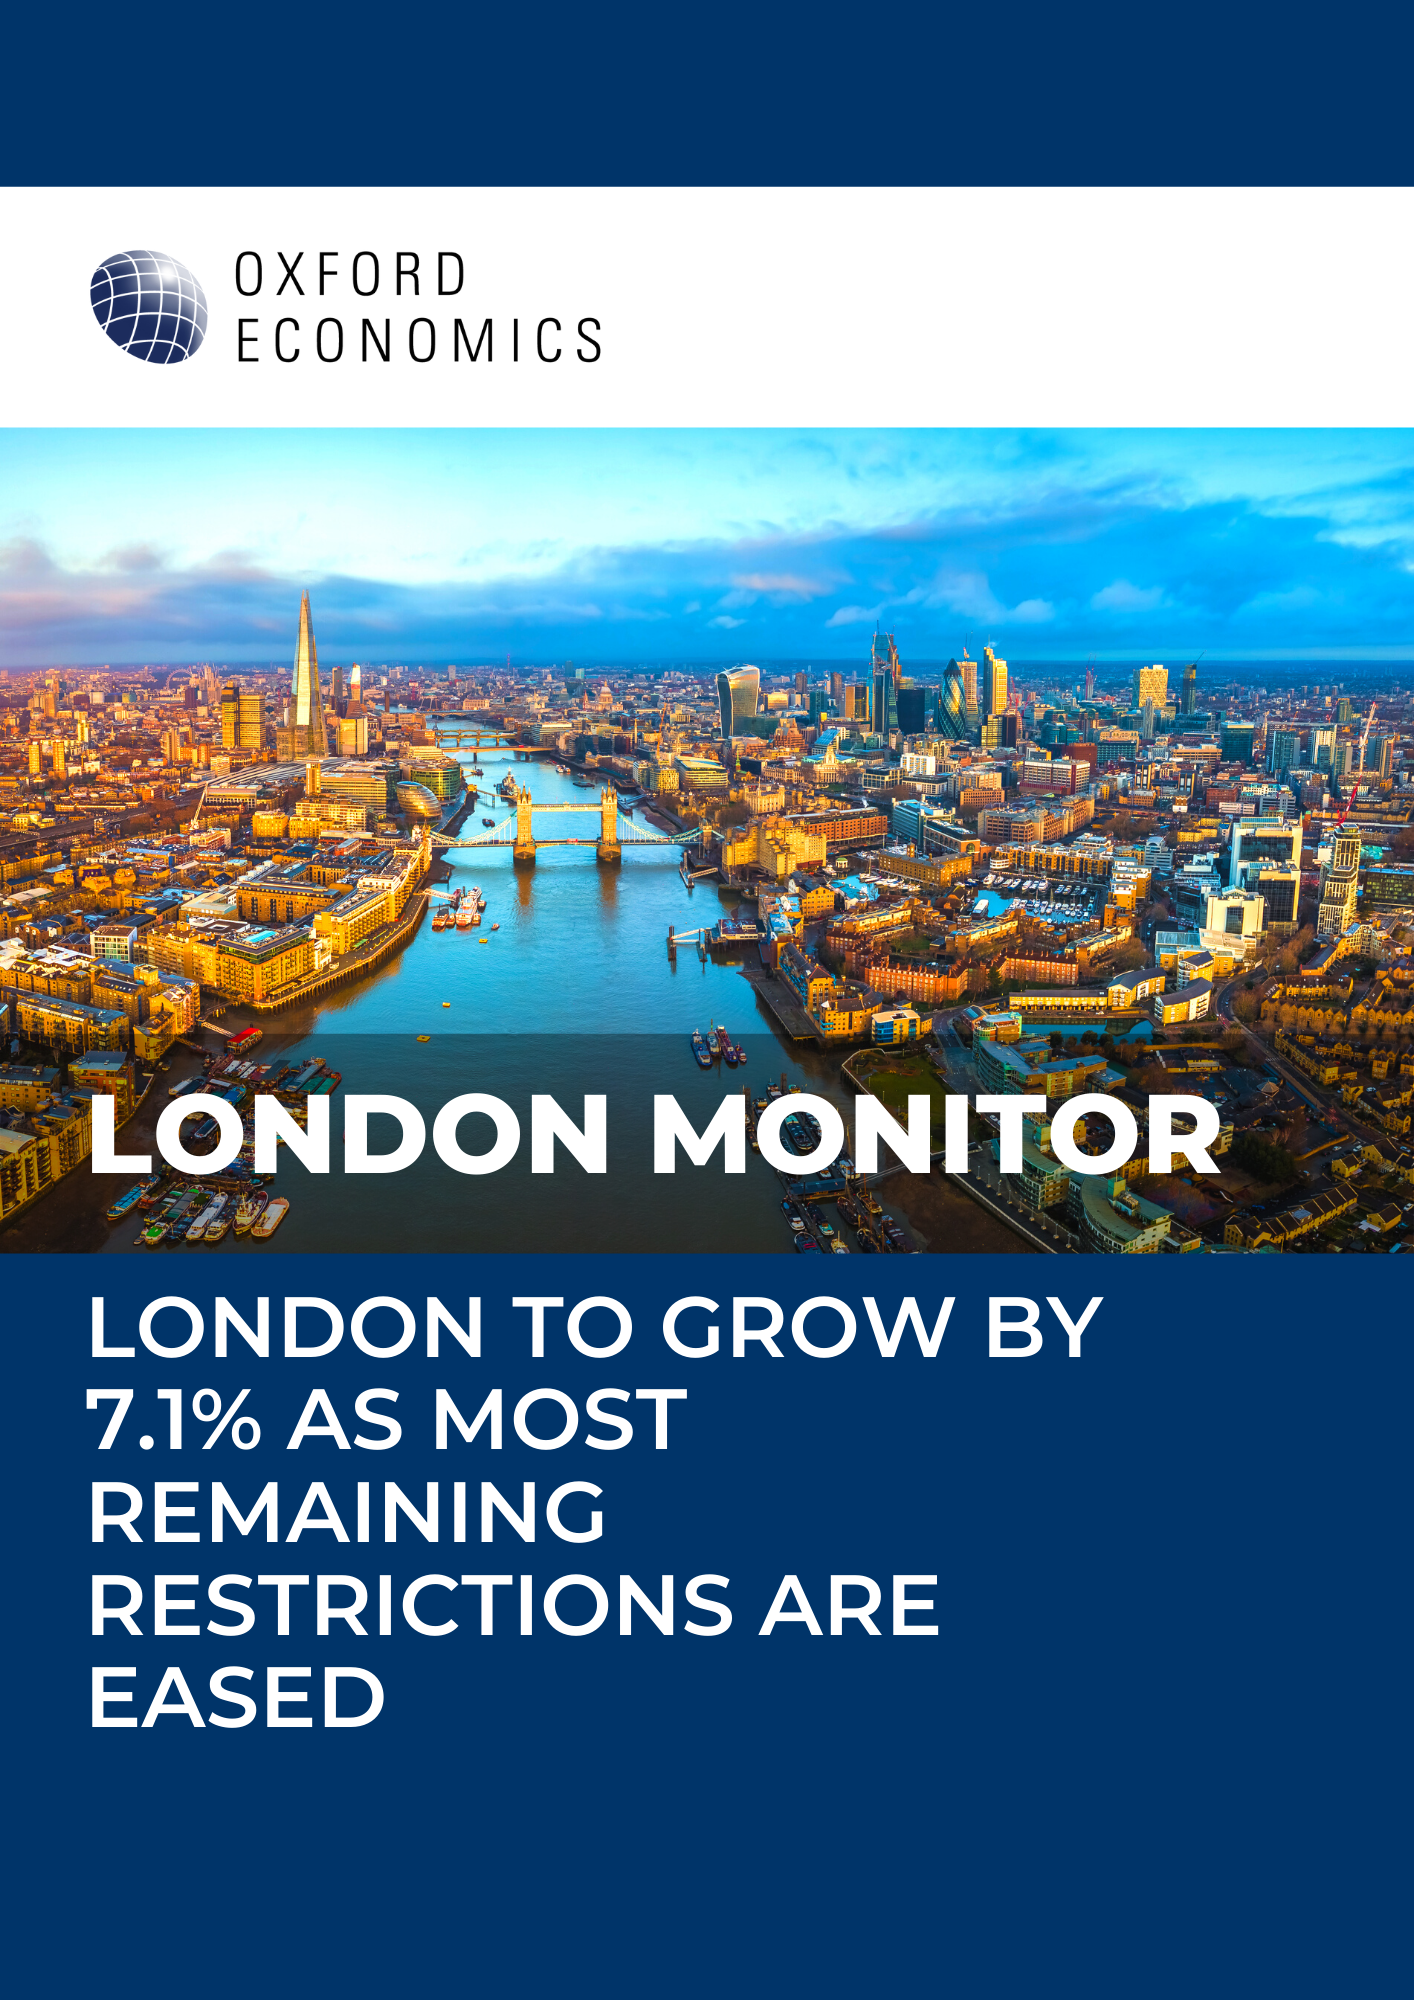 London Monitor | London to grow by 7.1% as most remaining restrictions are eased